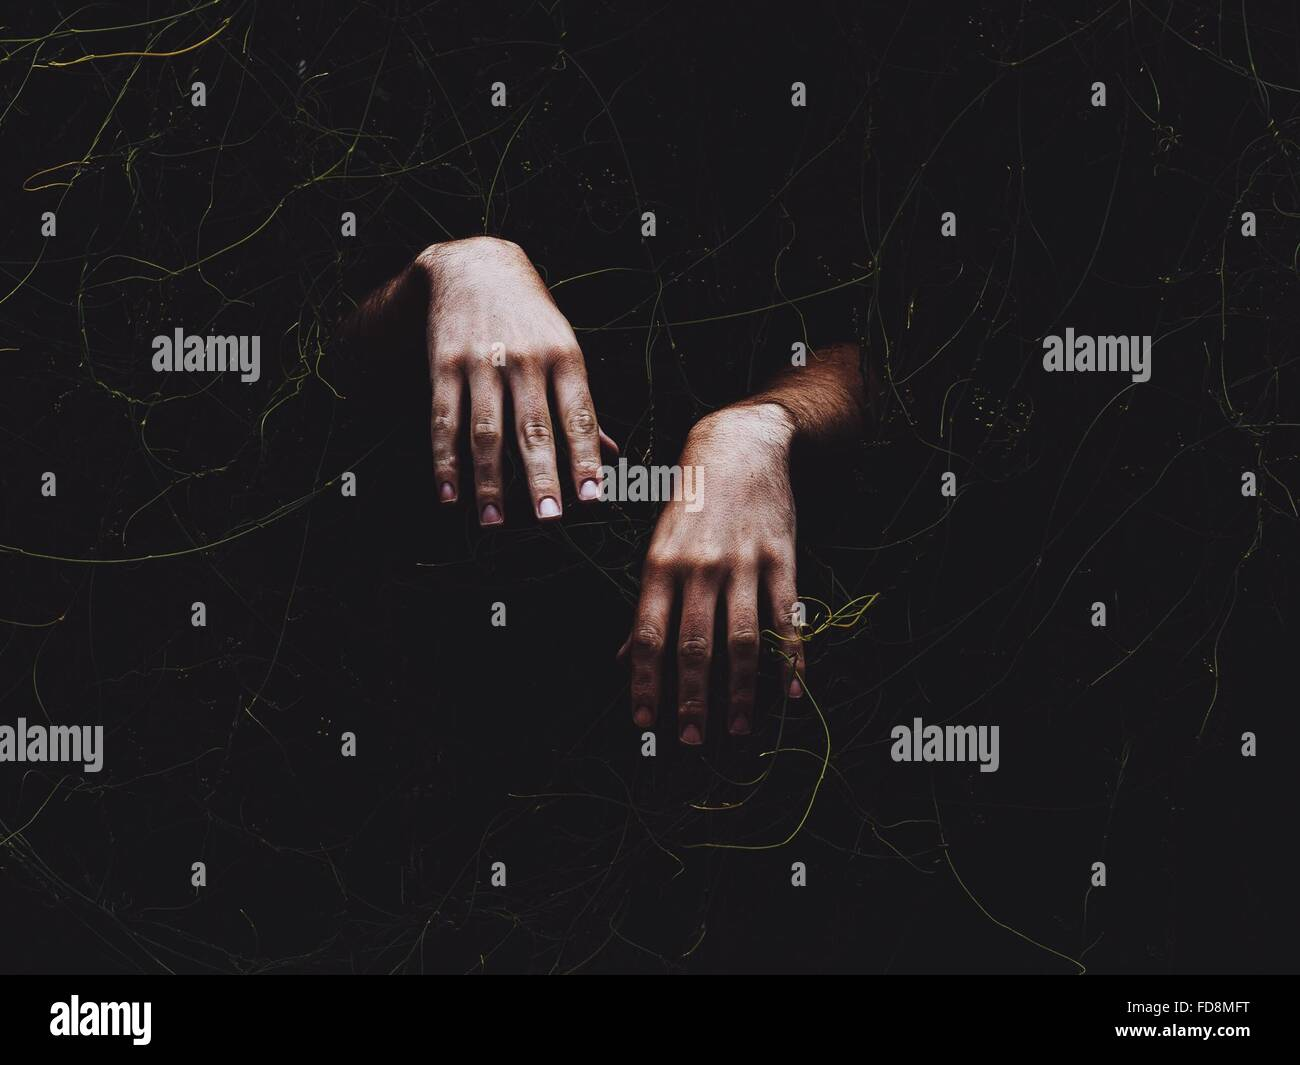 Cropped Image Of Hand Coming Out From Ivy Covered Wall At Night - Stock Image